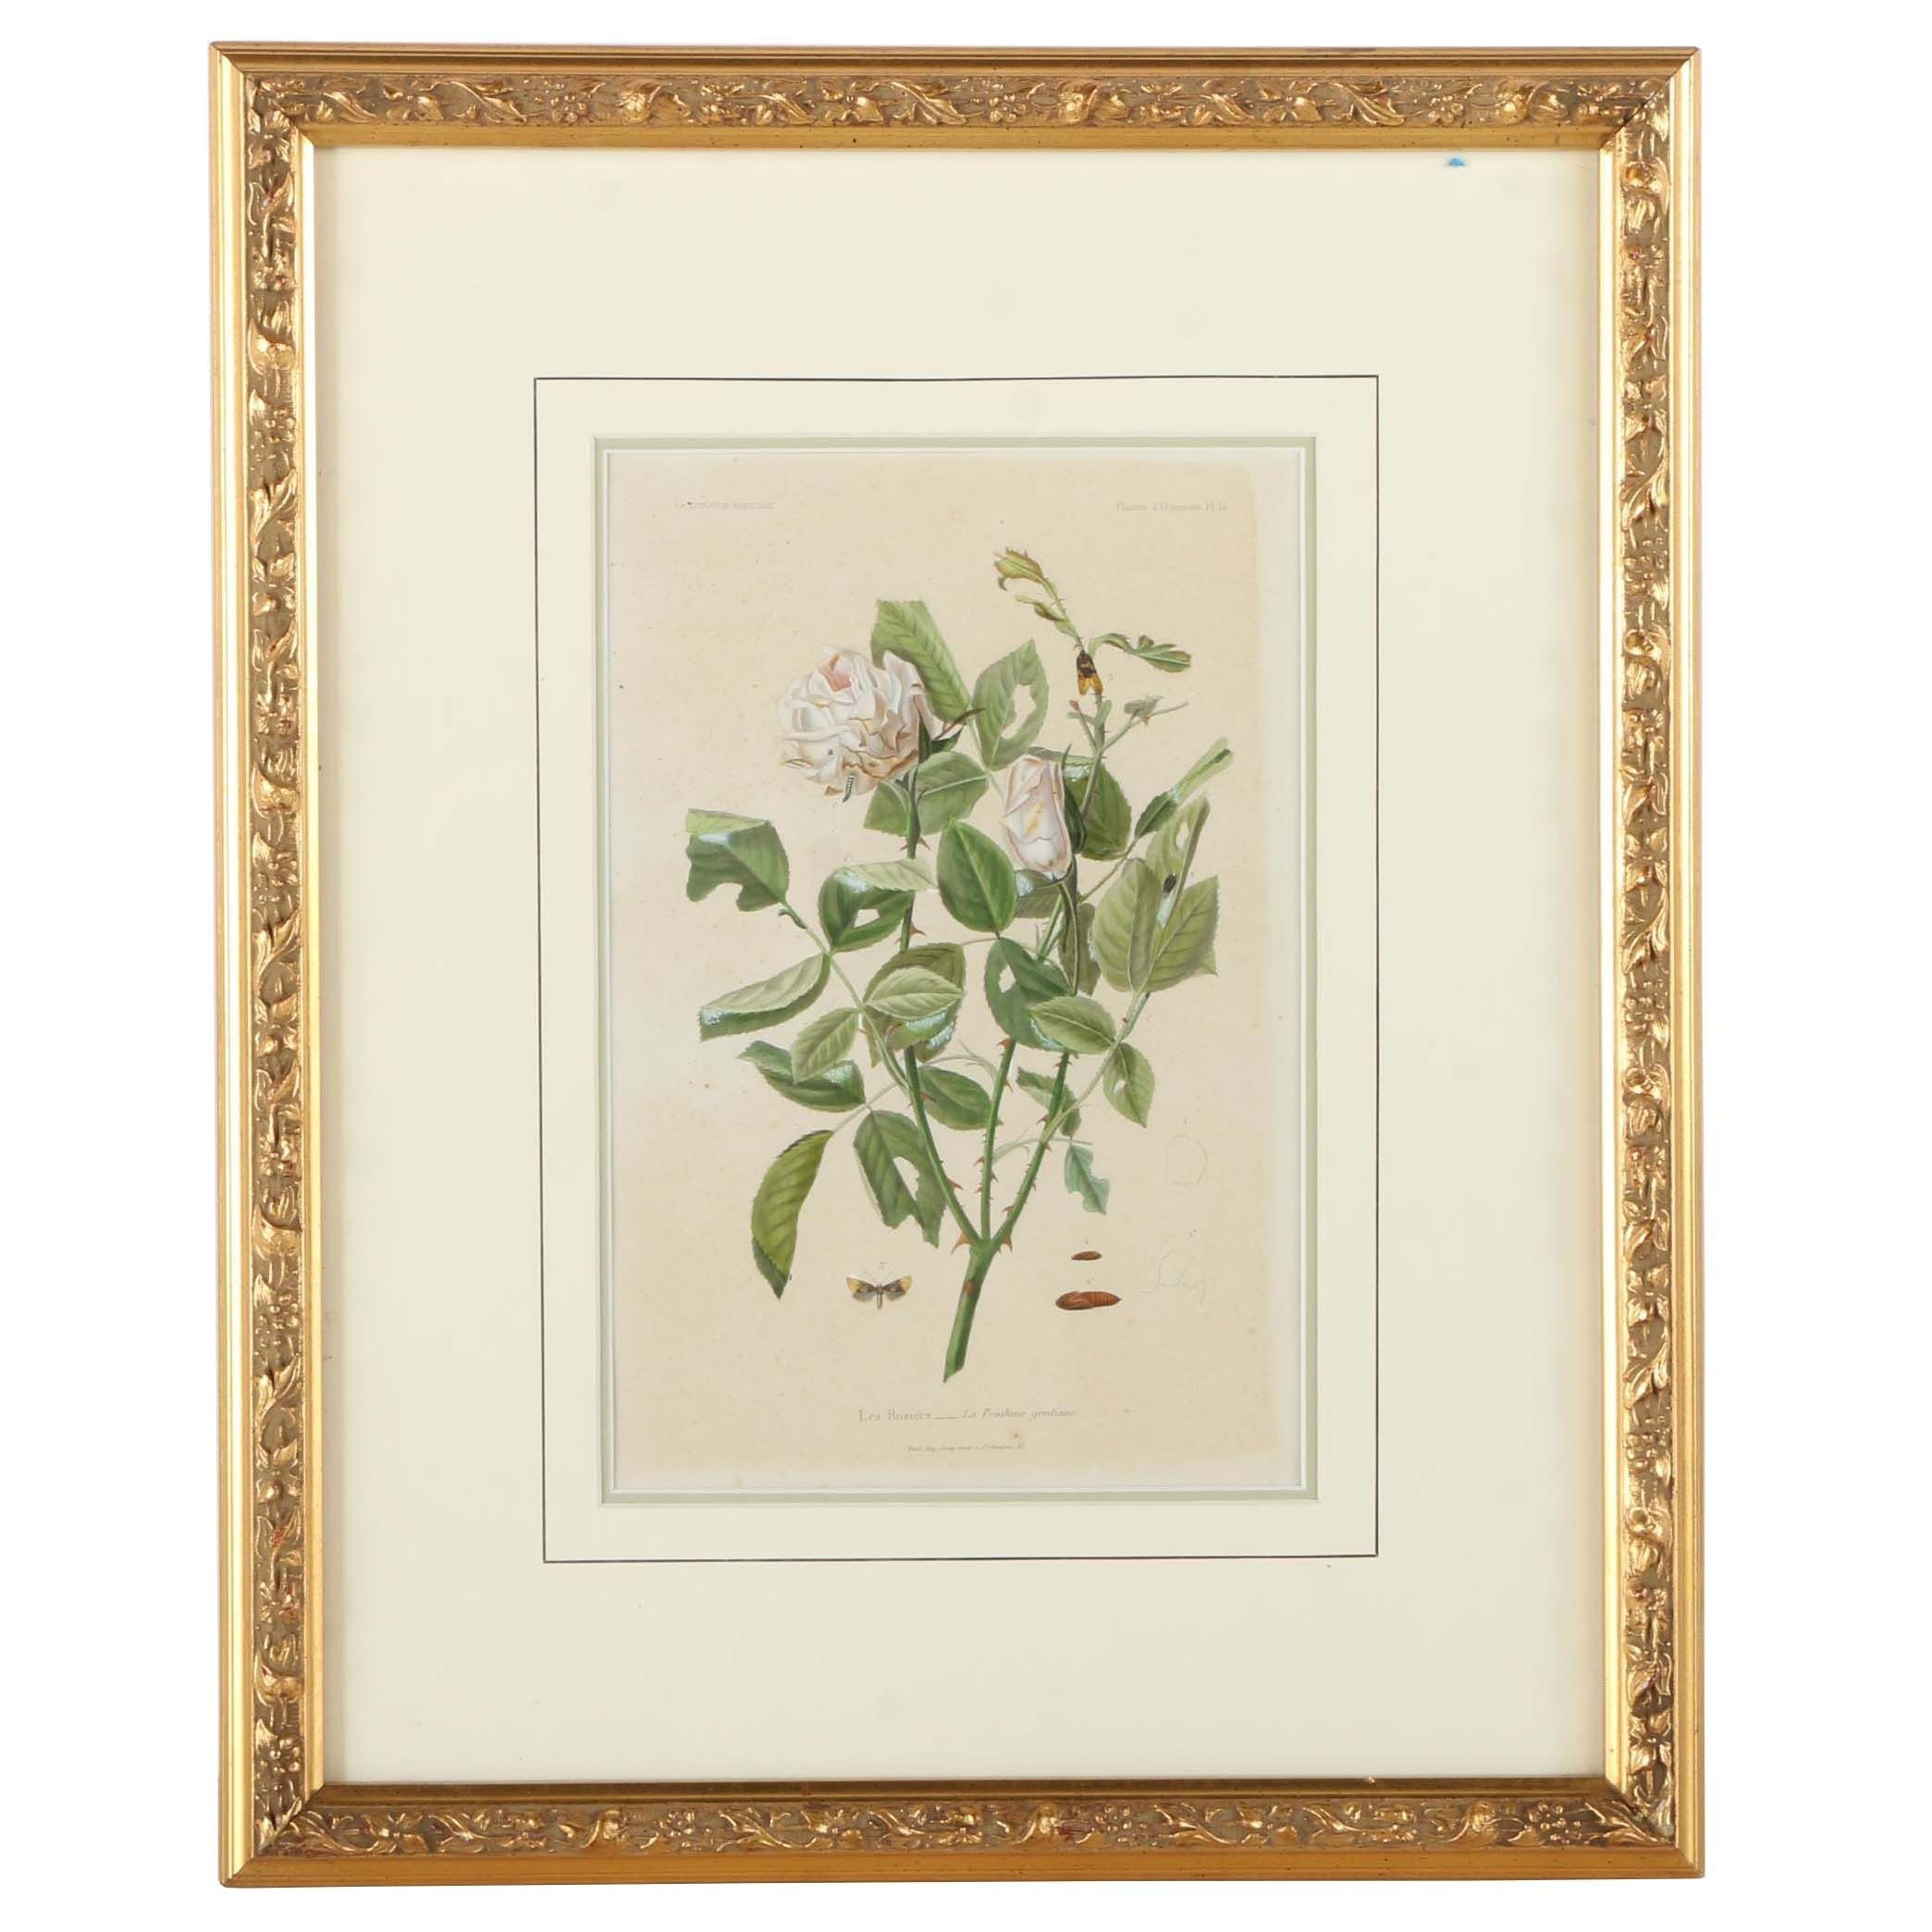 """Offset Lithograph on Paper After an Engraving """"Les Rosiers"""""""